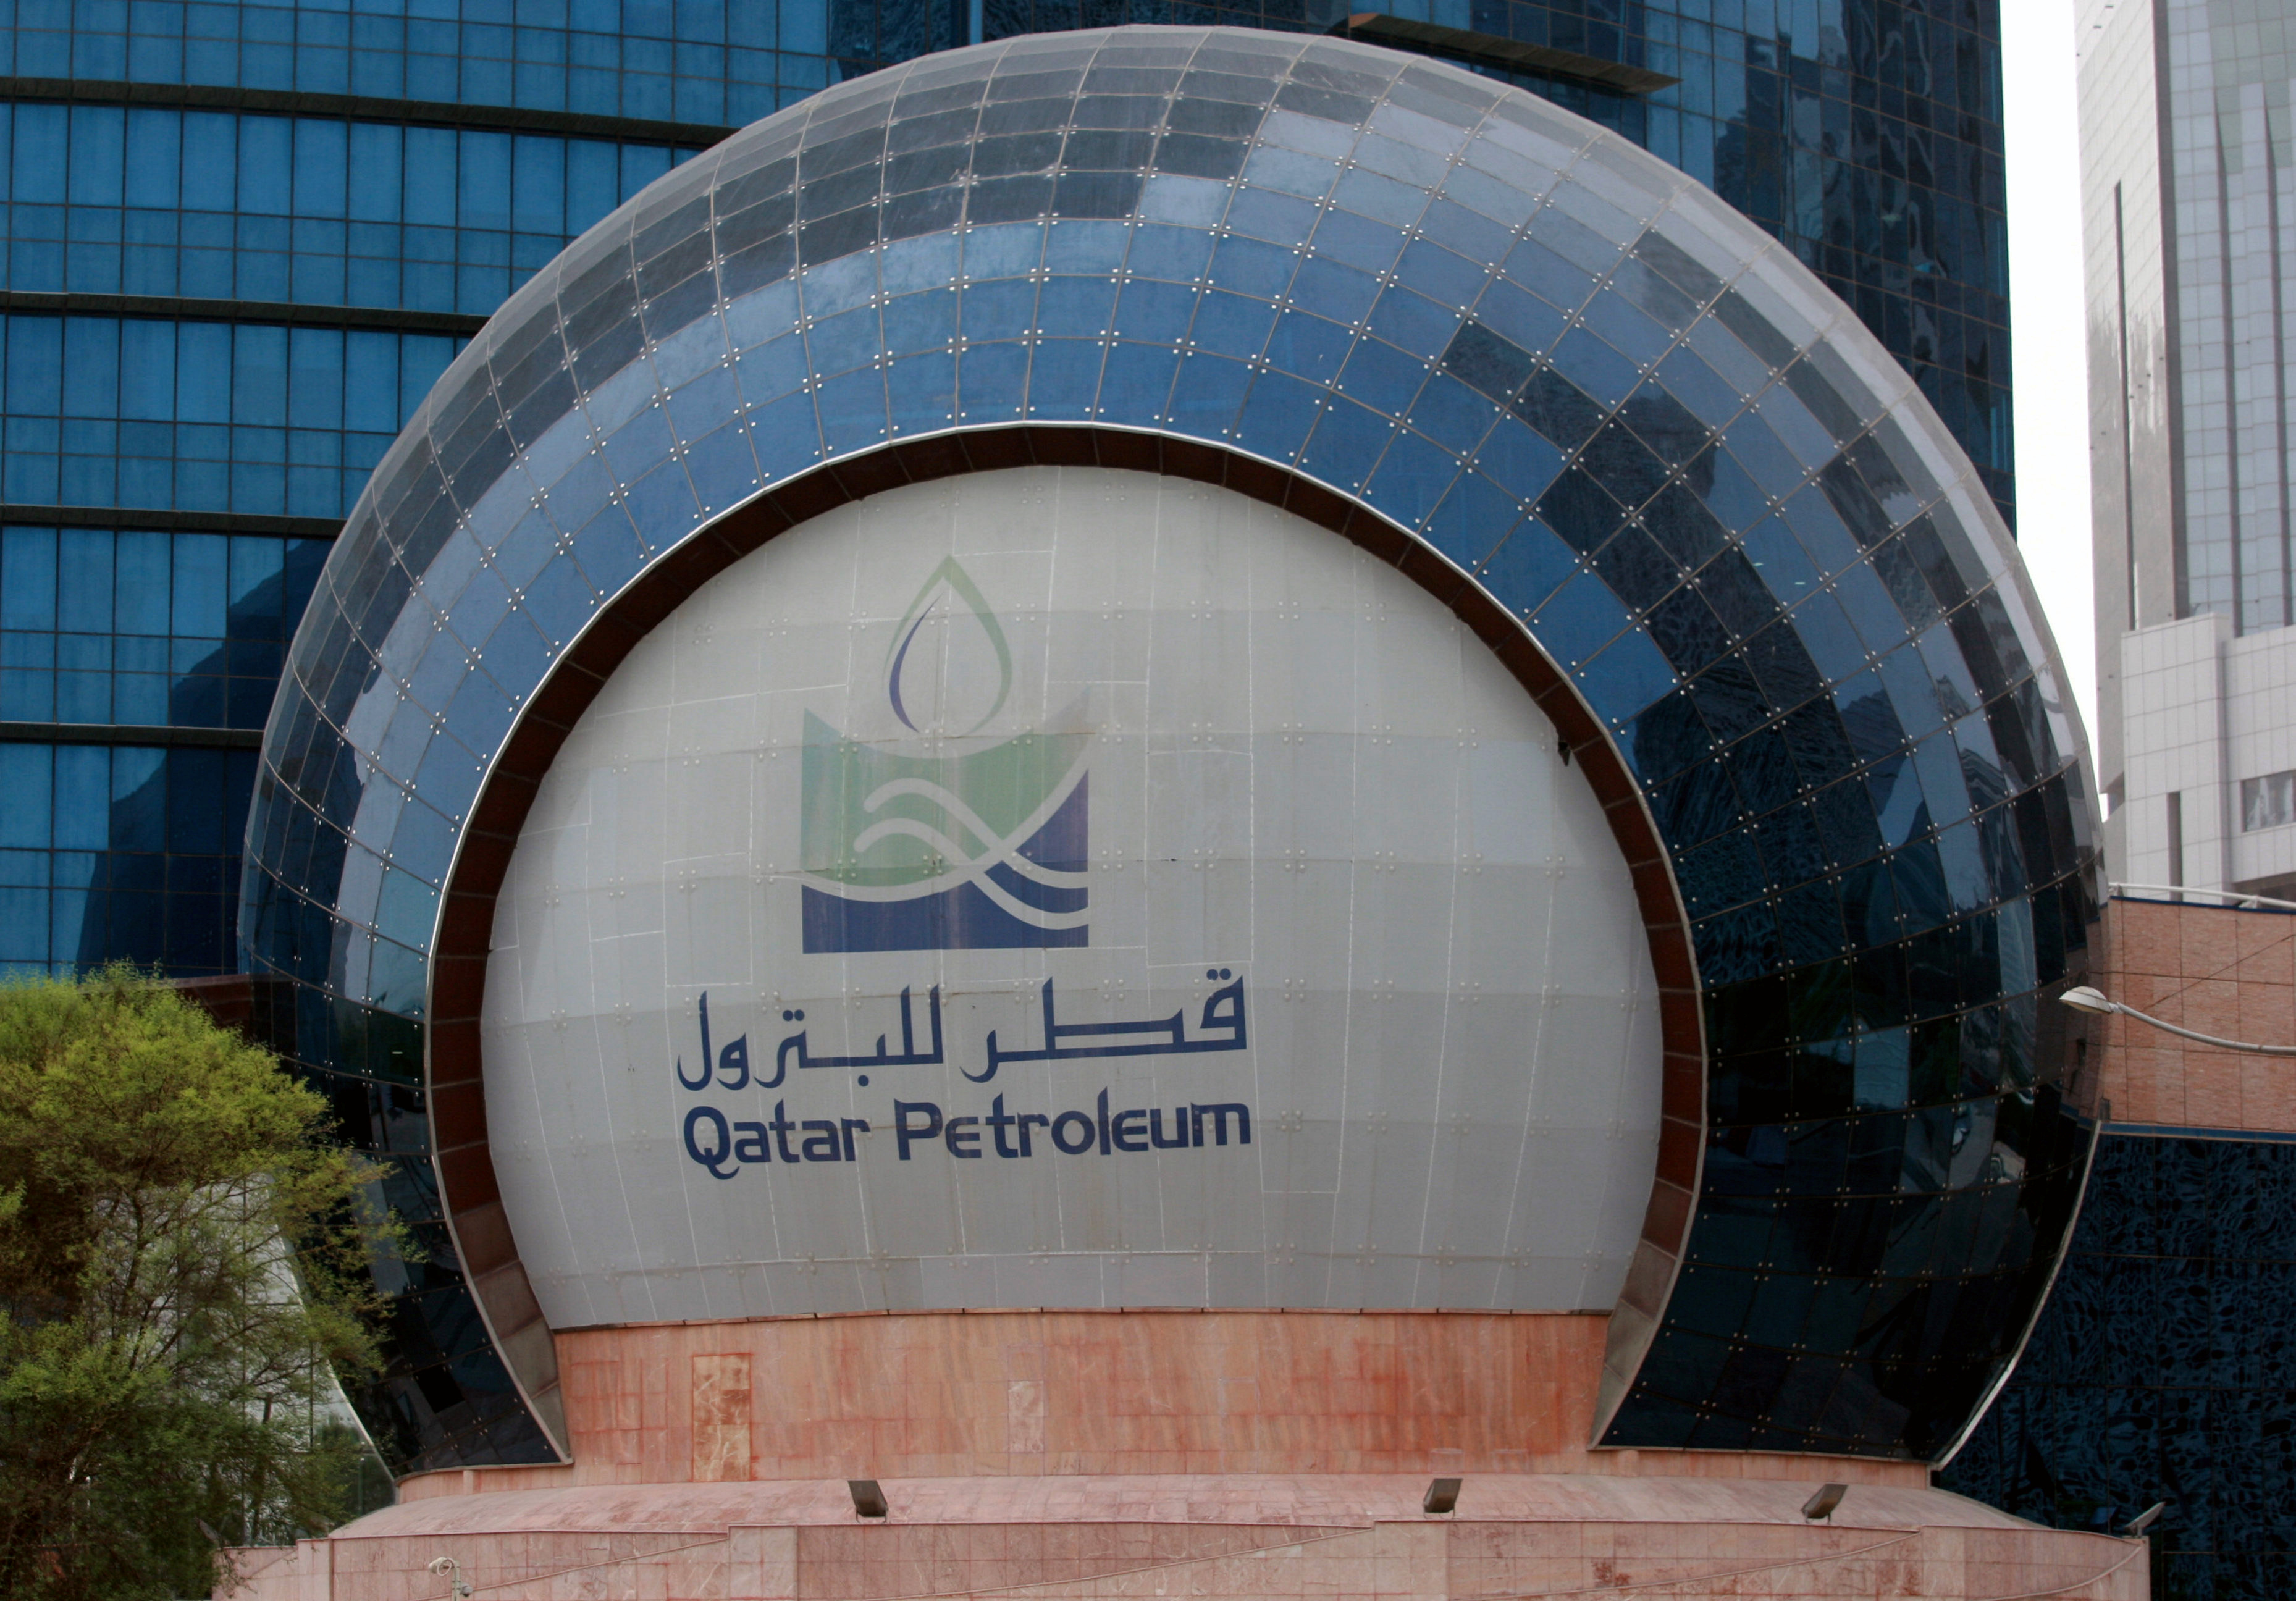 The logo of Qatar Petroleum is seen at its headquartes in Doha, Qatar, July 8, 2017. REUTERS/Stringer